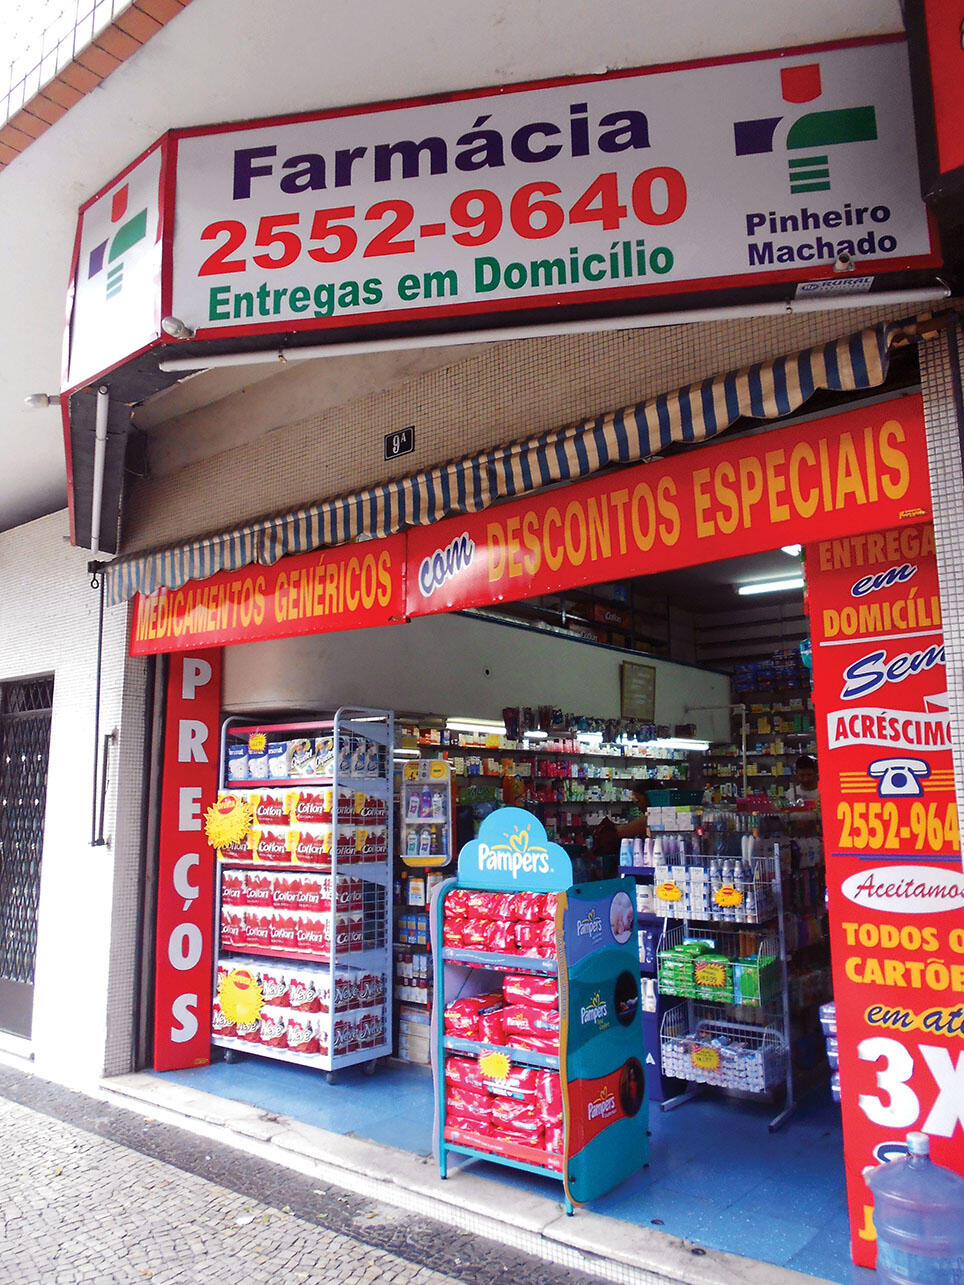 In 2012, a pharmacy in Rio de Janeiro, Brazil, advertises special discounts on generic drugs. (Photo by Eduardo Pazos/Wikimedia Commons.)